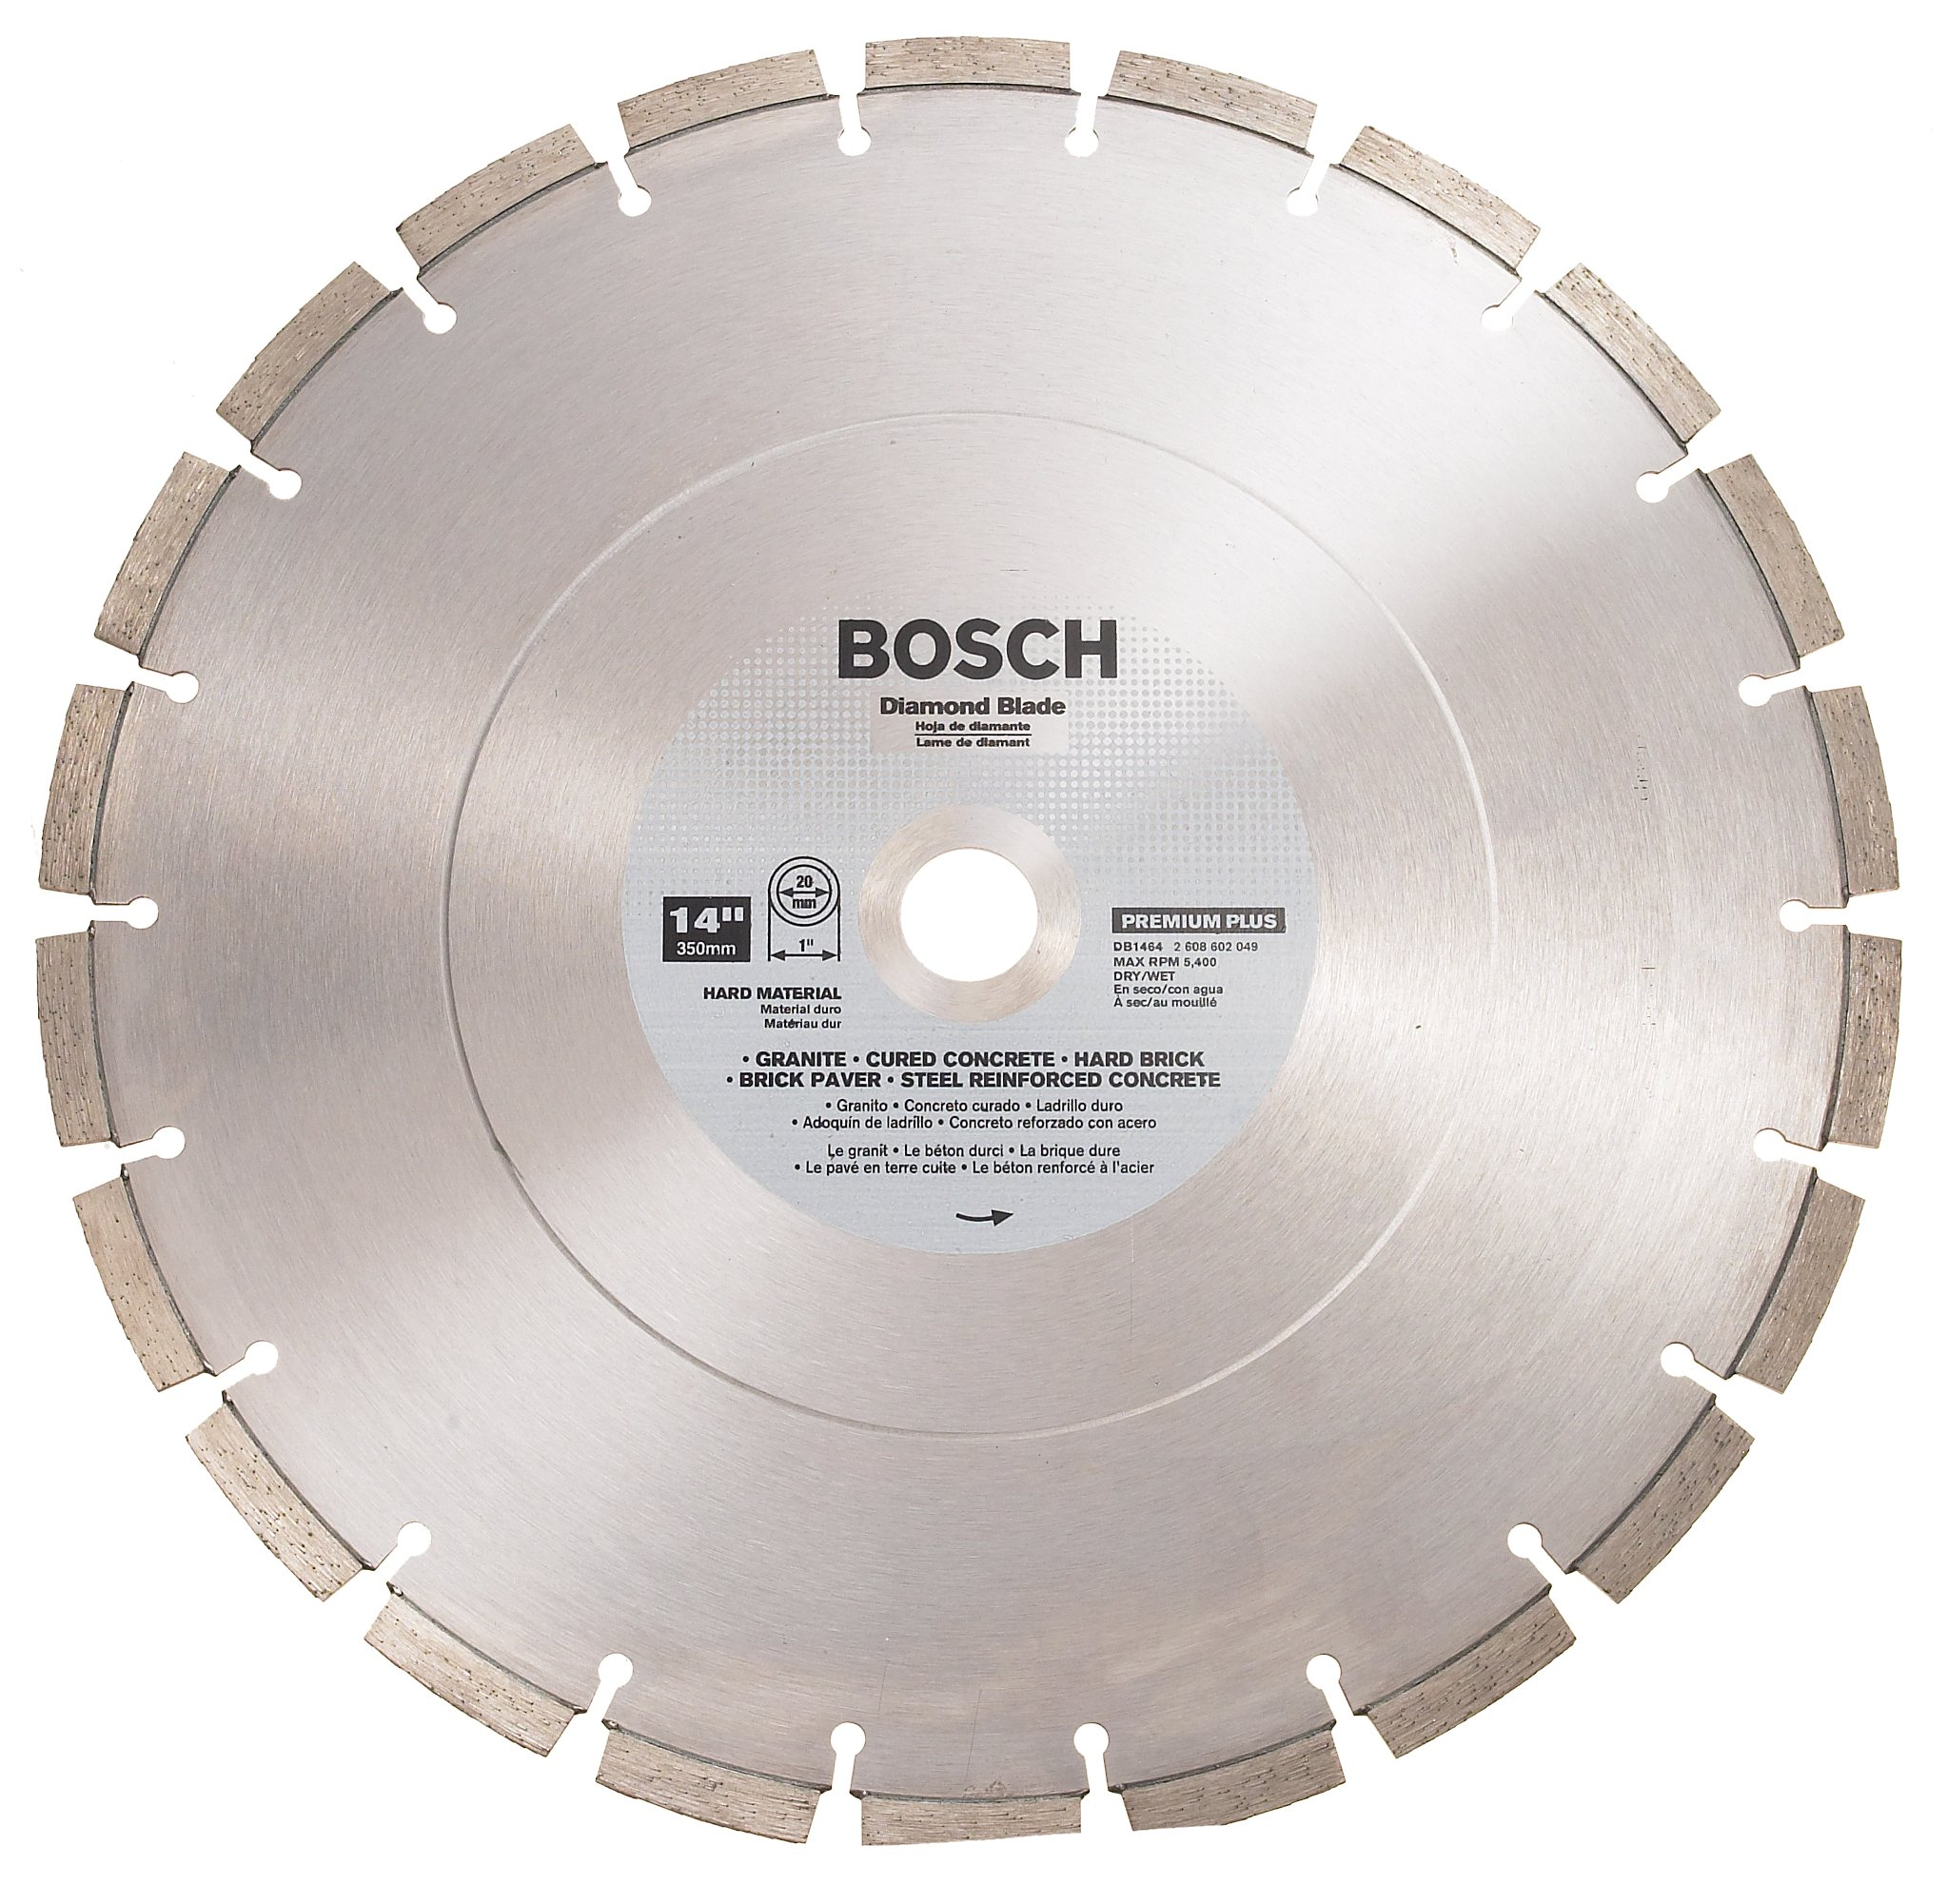 Bosch DB1464 Premium Plus 14-Inch Dry or Wet Cutting Segmented Diamond Saw Blade with 1-Inch Arbor for Reinforced Concrete